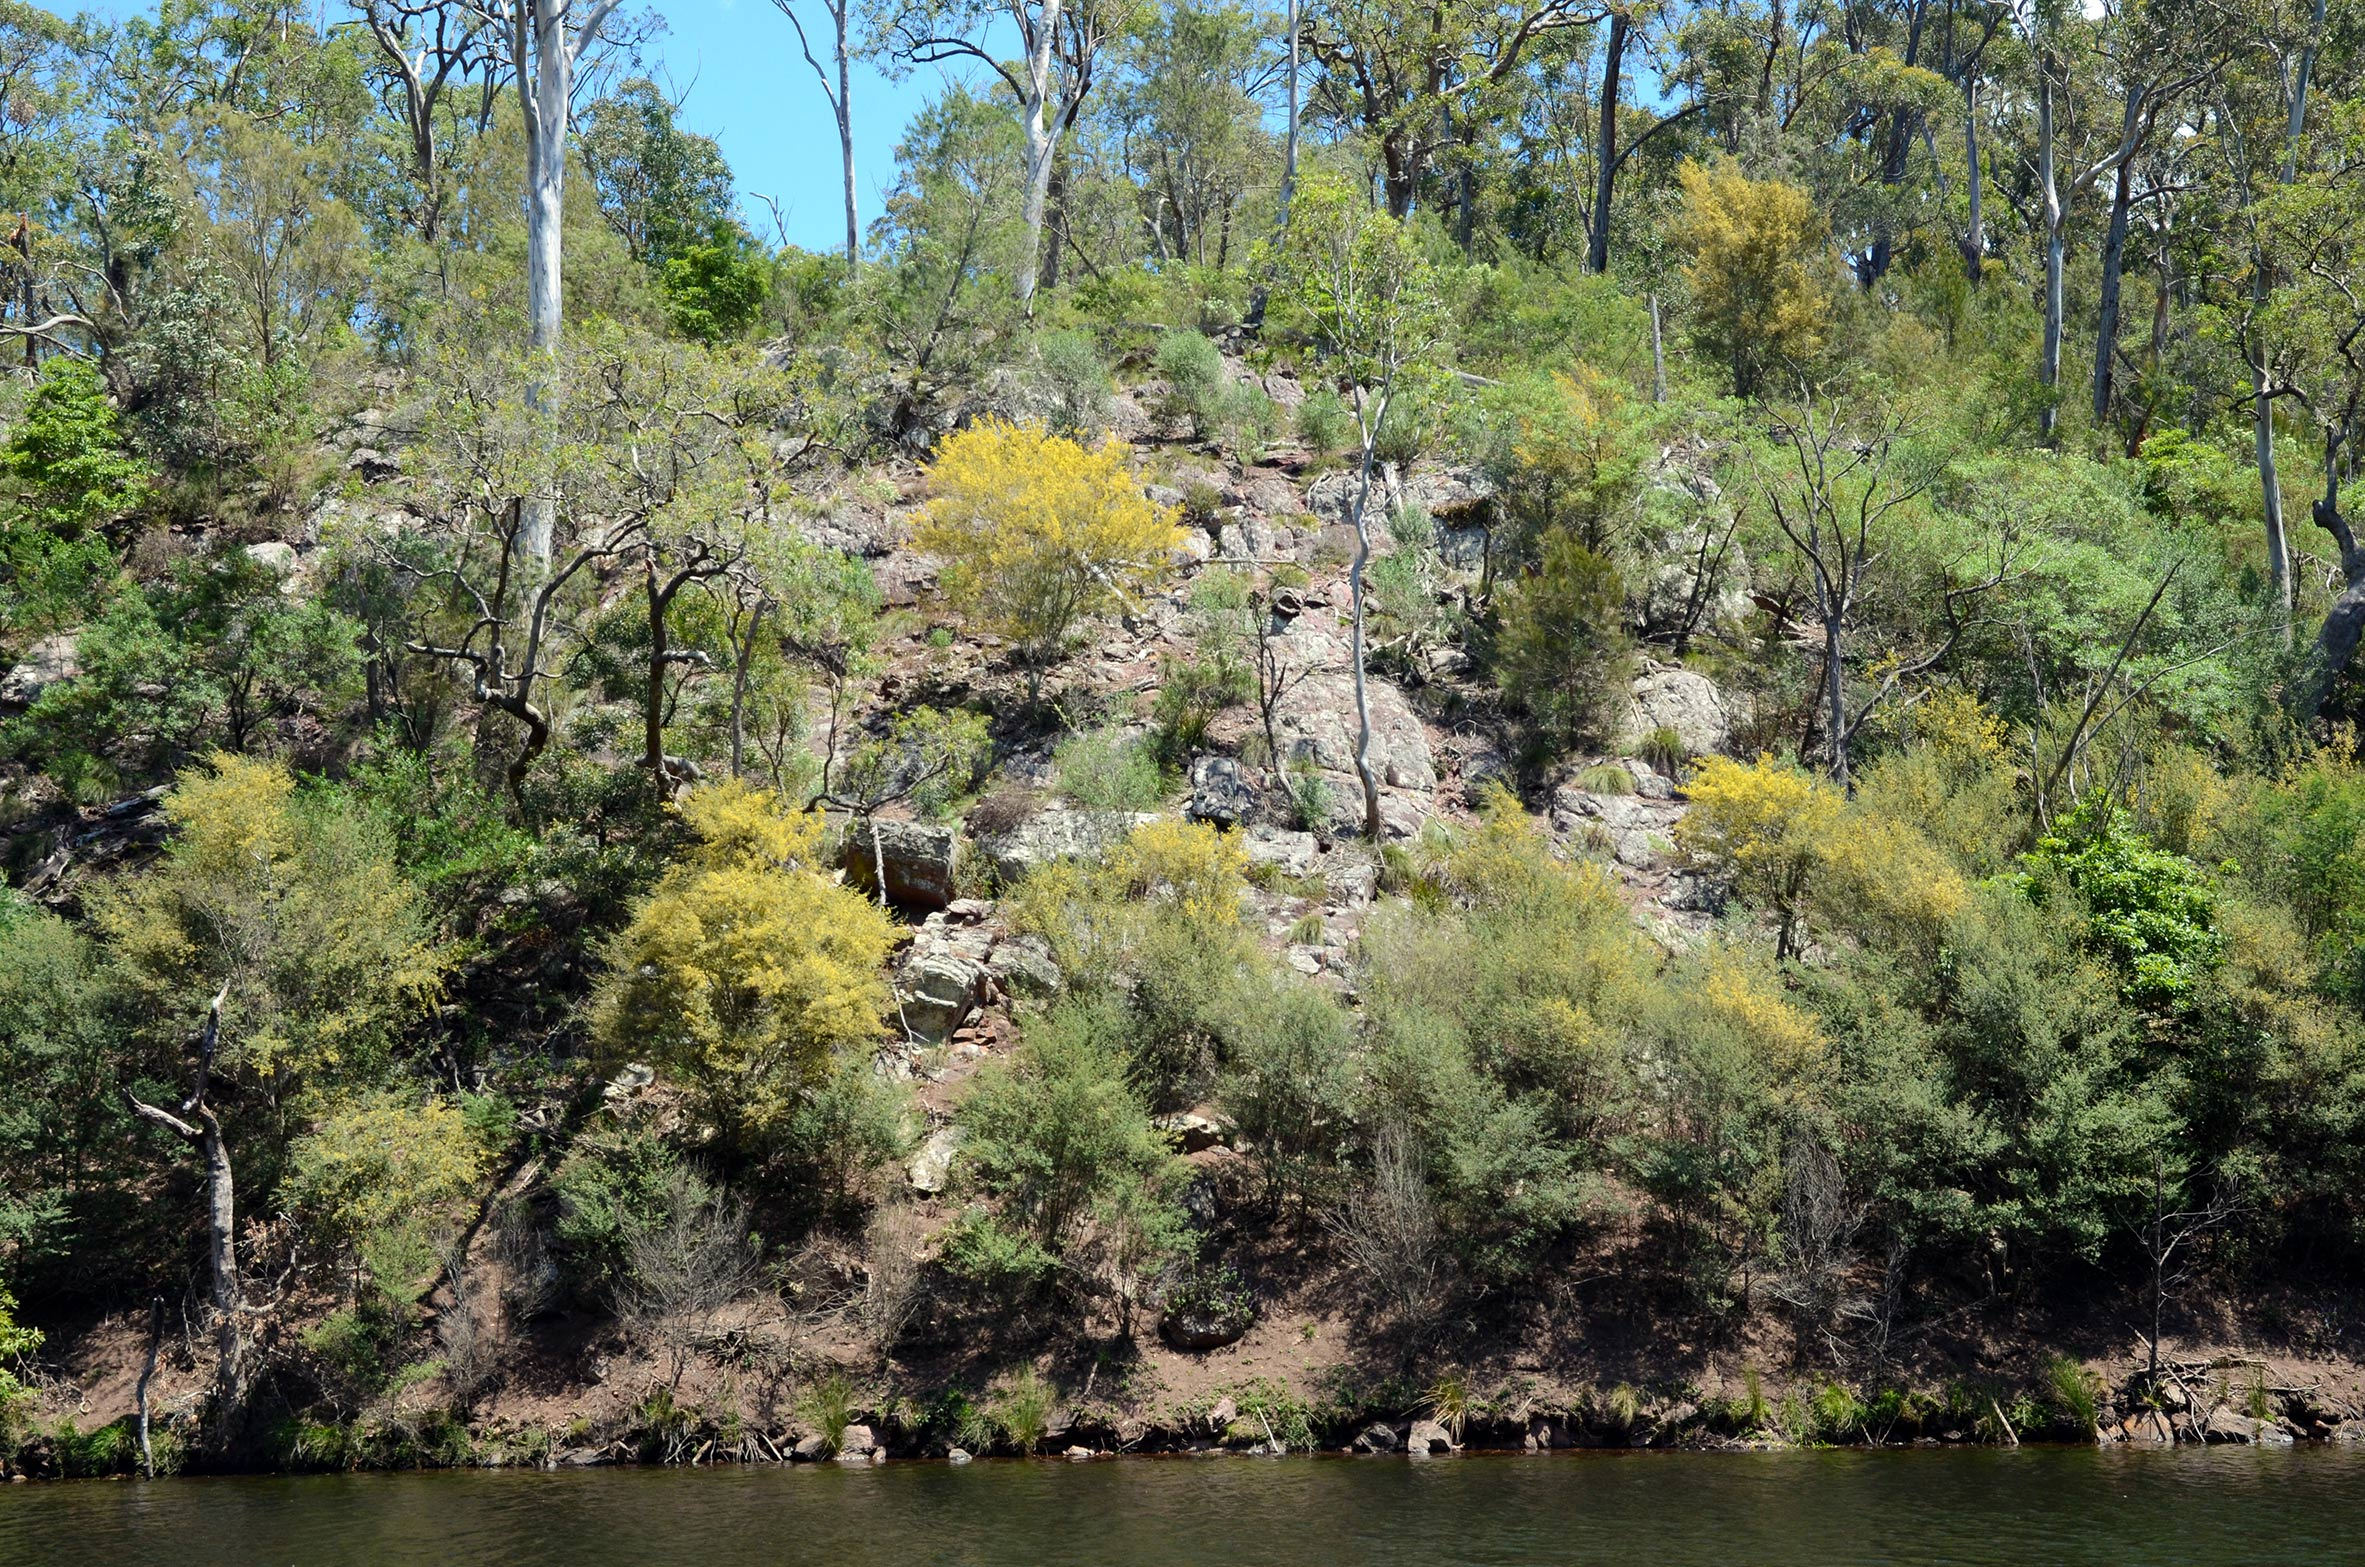 The shoreline is rugged and heavily vegetated in many parts.